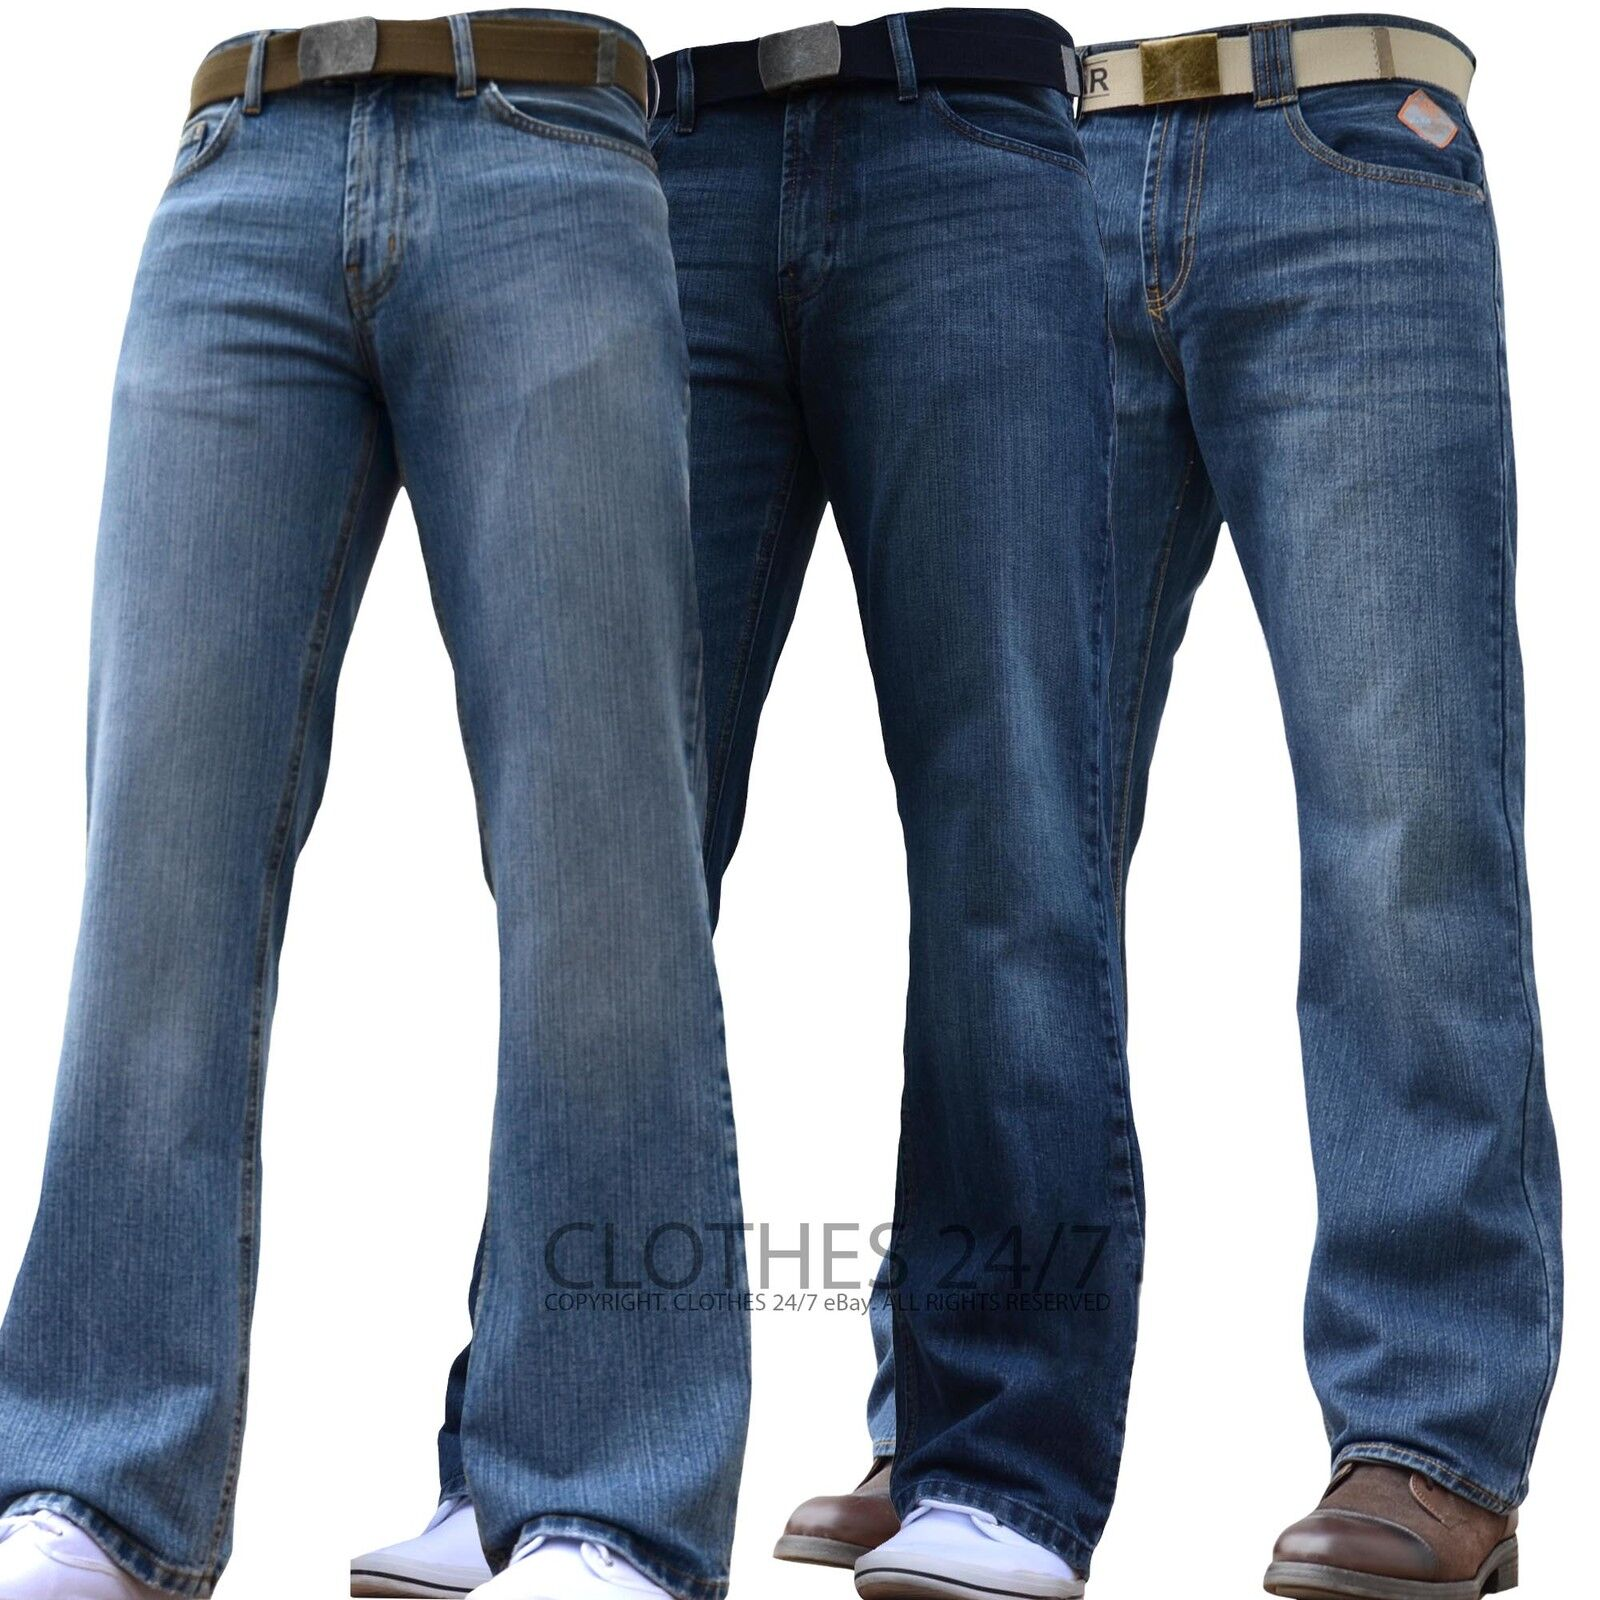 BNWT NEW MENS WIDE LEG BOOTCUT FLARED BLUE HEAVY DENIM JEANS ALL WAIST & SIZES